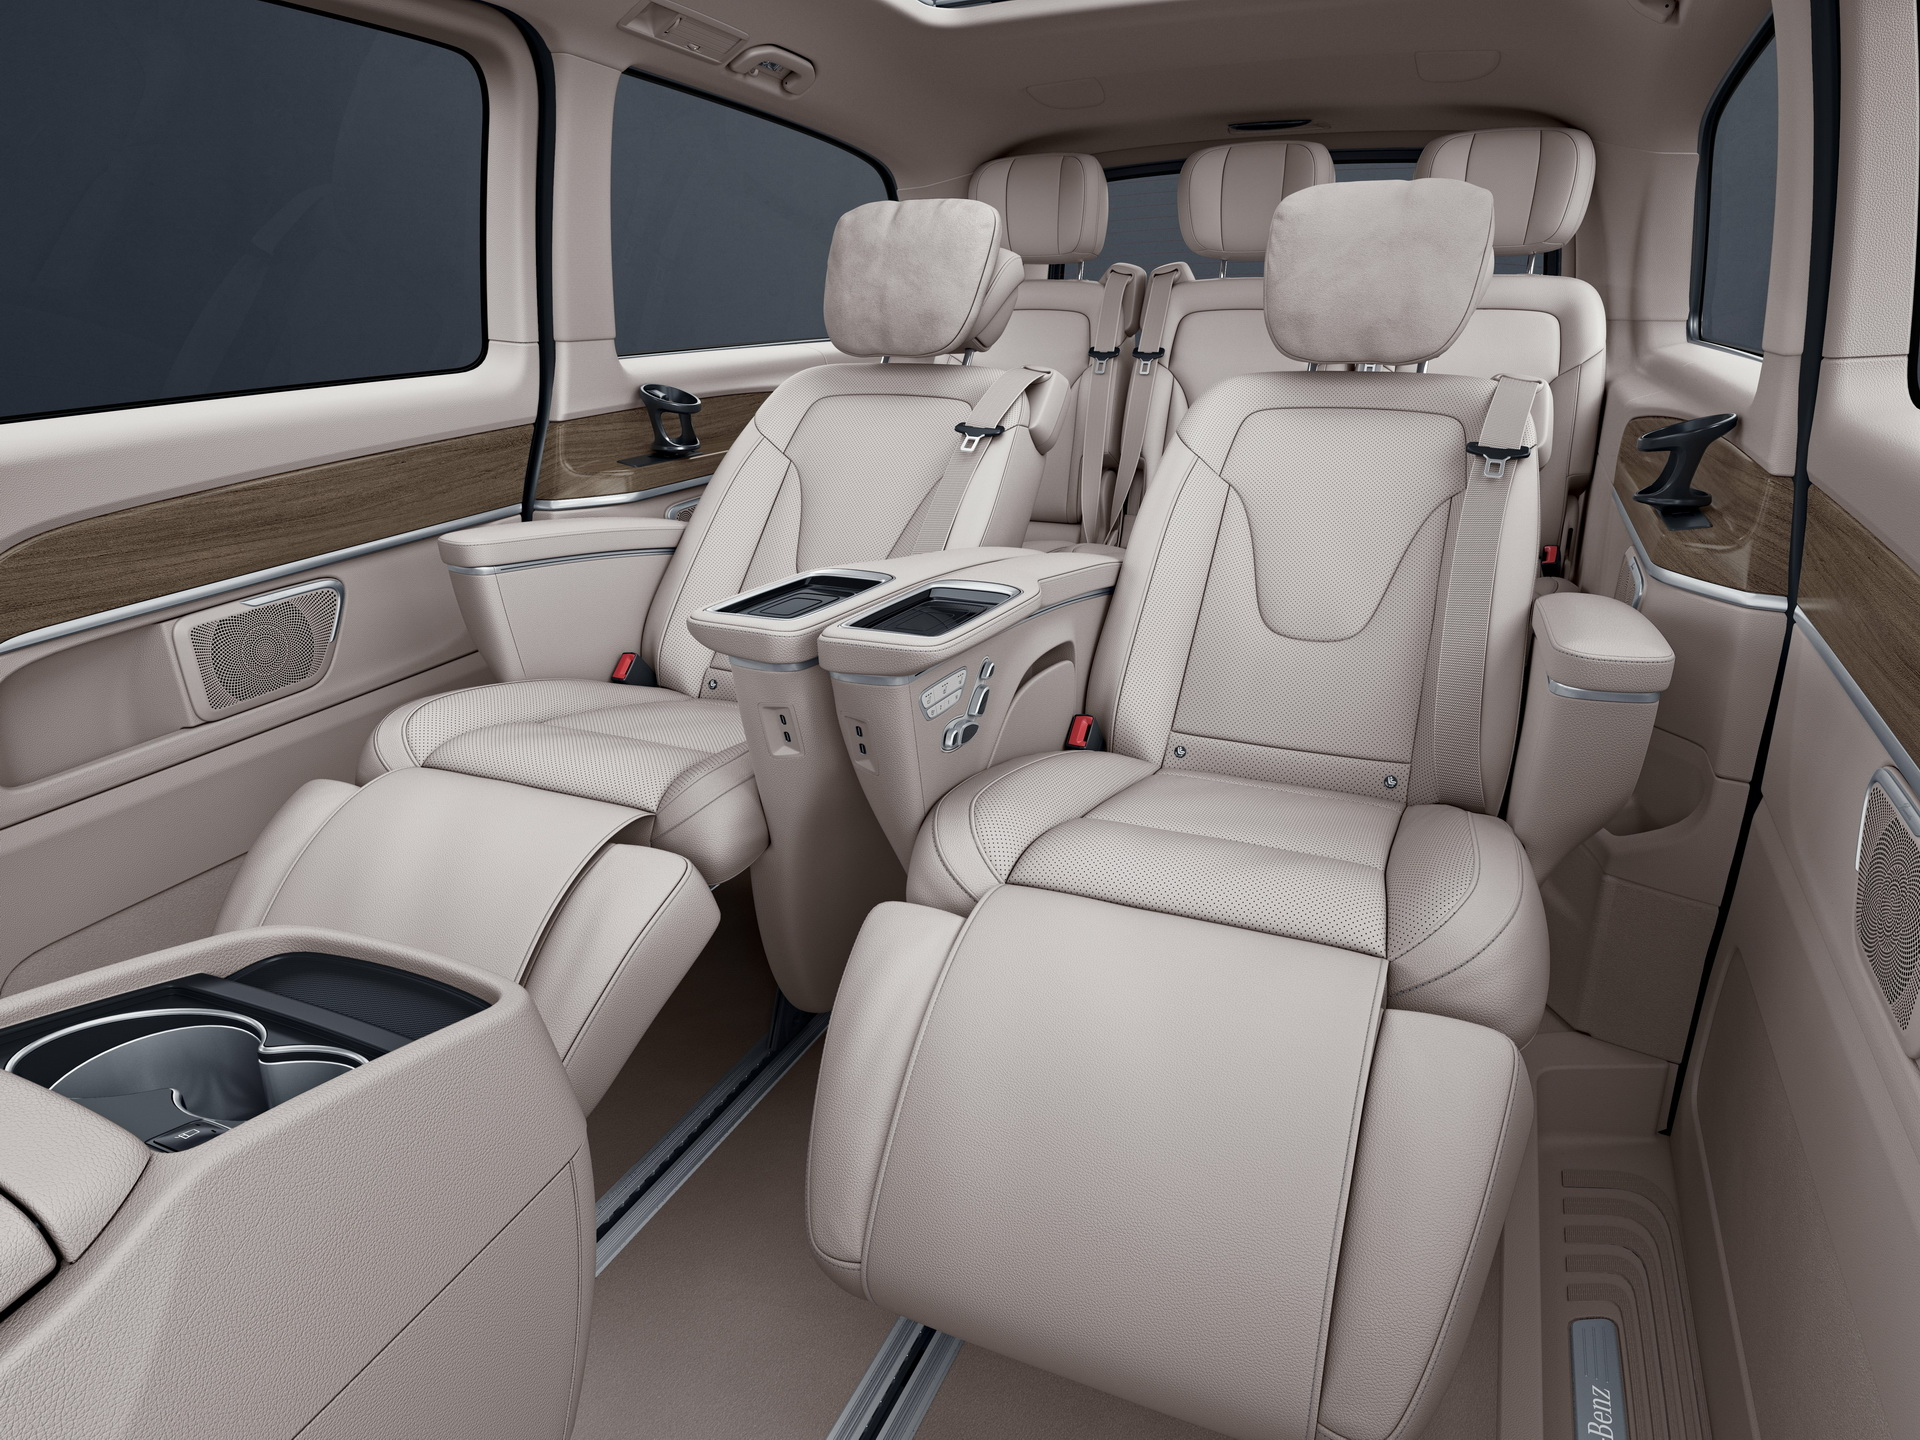 China, This Is Your 2021 Mercedes-Benz V-Class Luxury ...